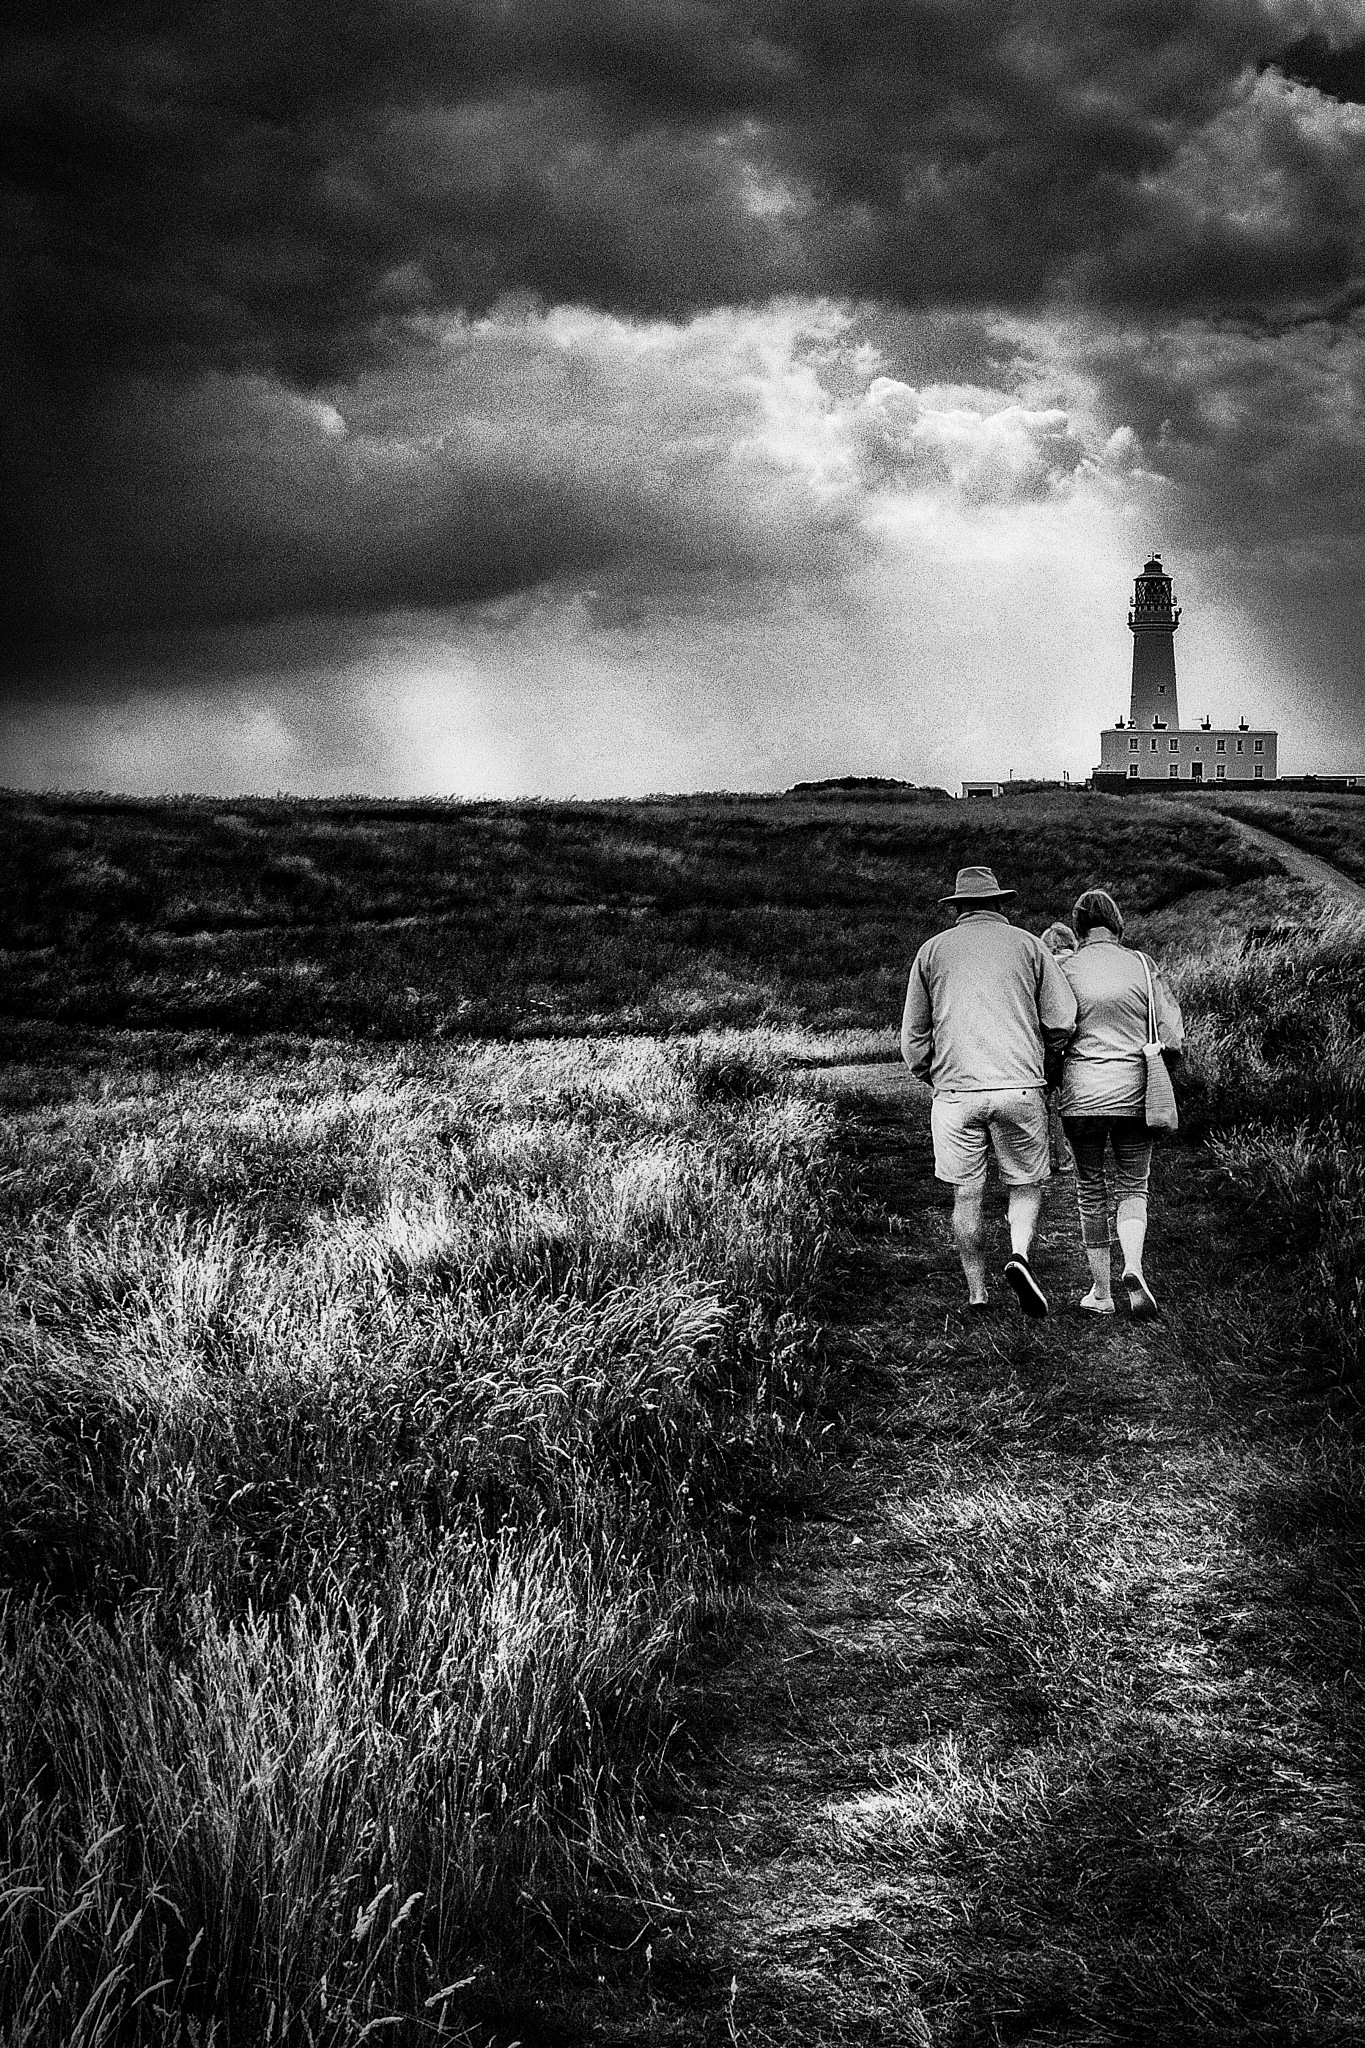 Moody Skies by mark fisher